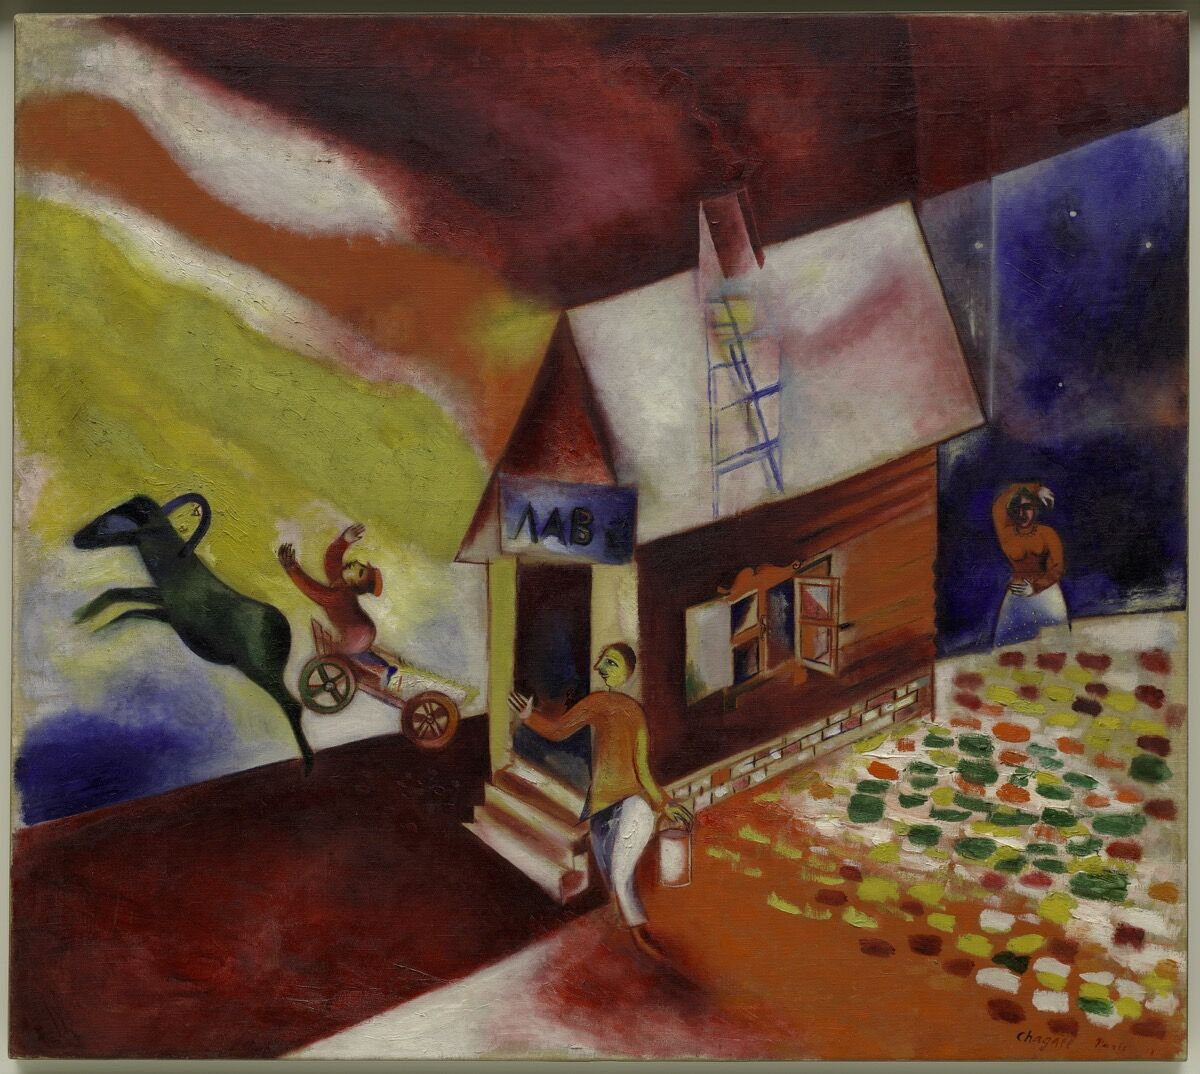 Marc Chagall, The Flying Carriage (La calèche volante), 1913.© Marc Chagall, Vegap, Bilbao 2018. Courtesy of the Guggenheim Bilbao.